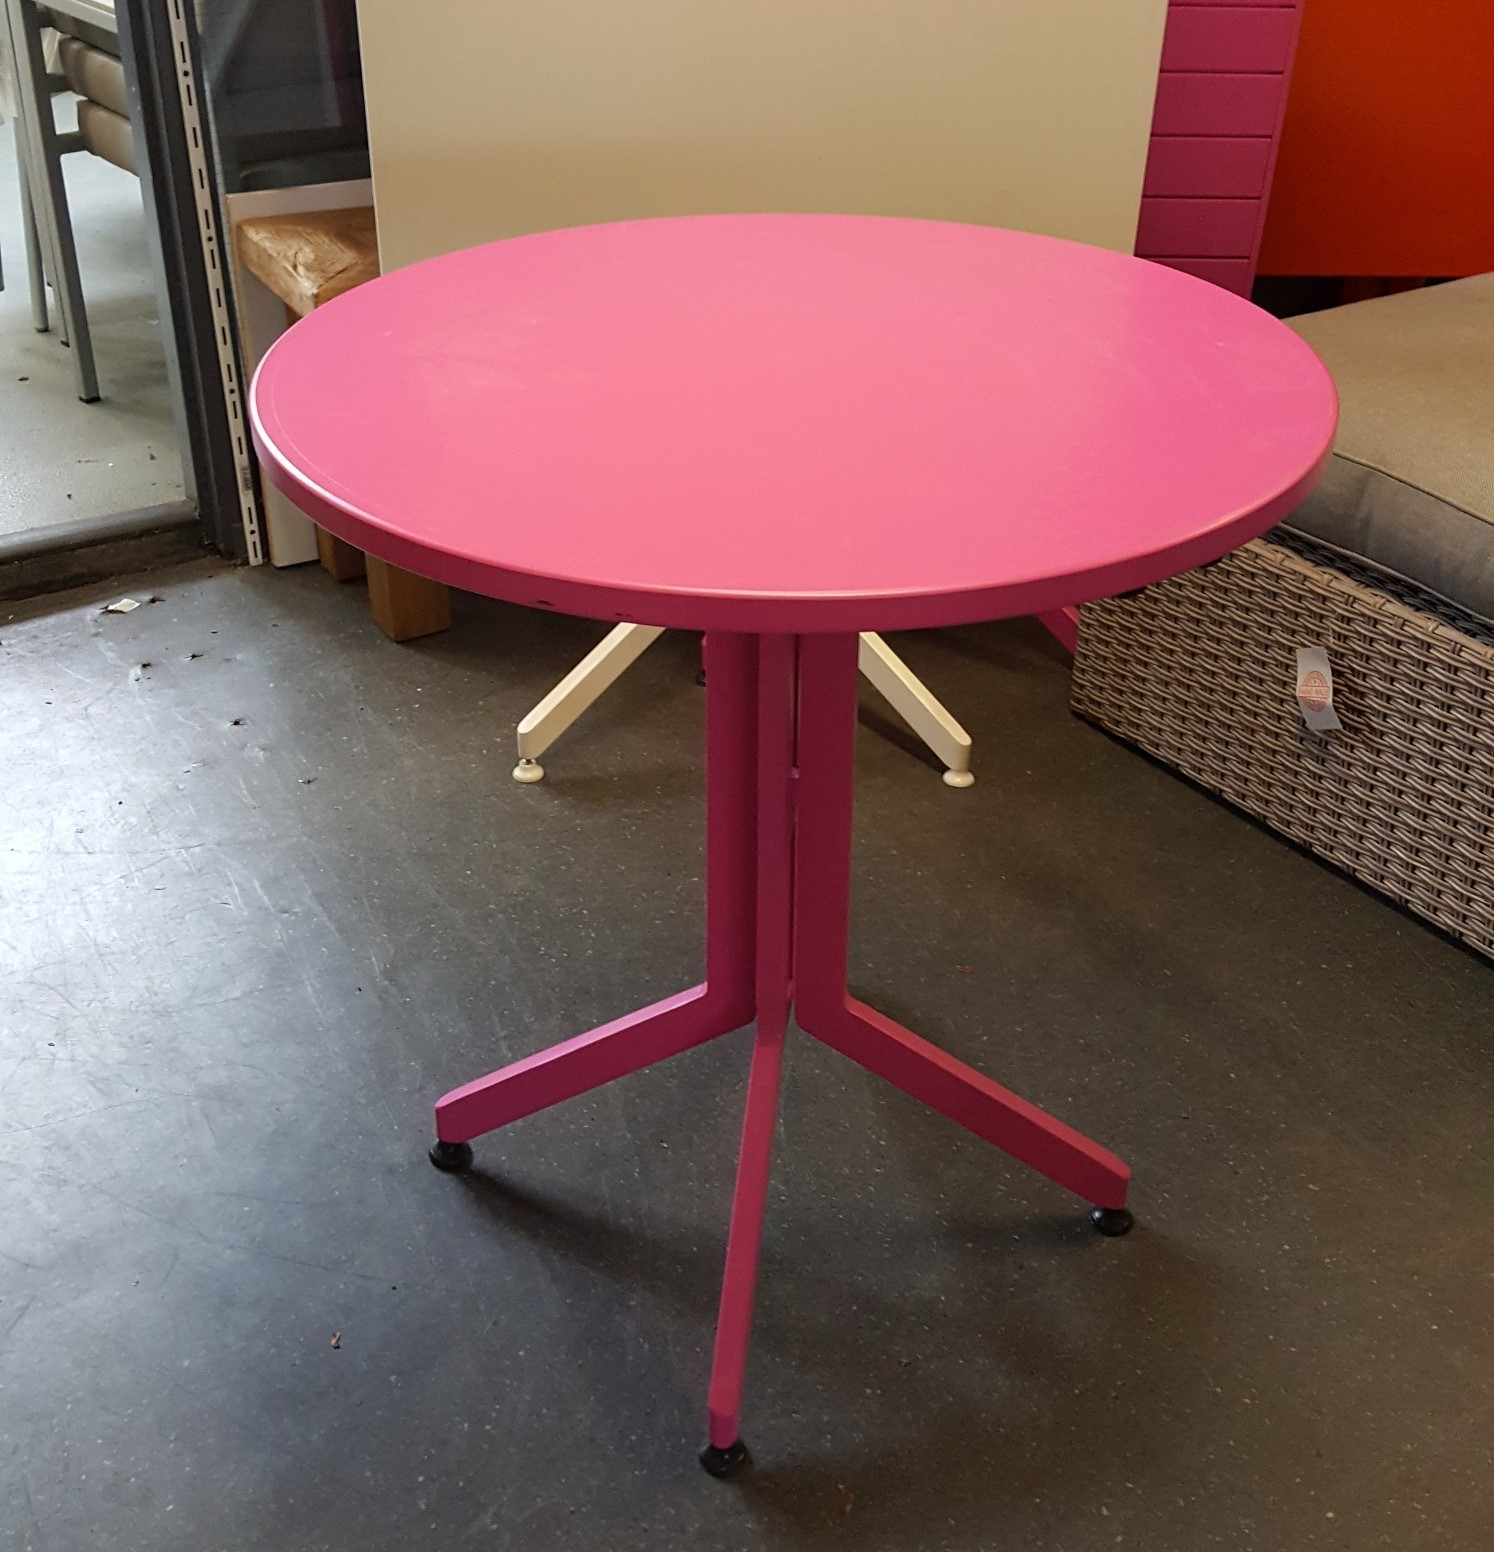 Tuintafel Hawaii roze Applebee rond